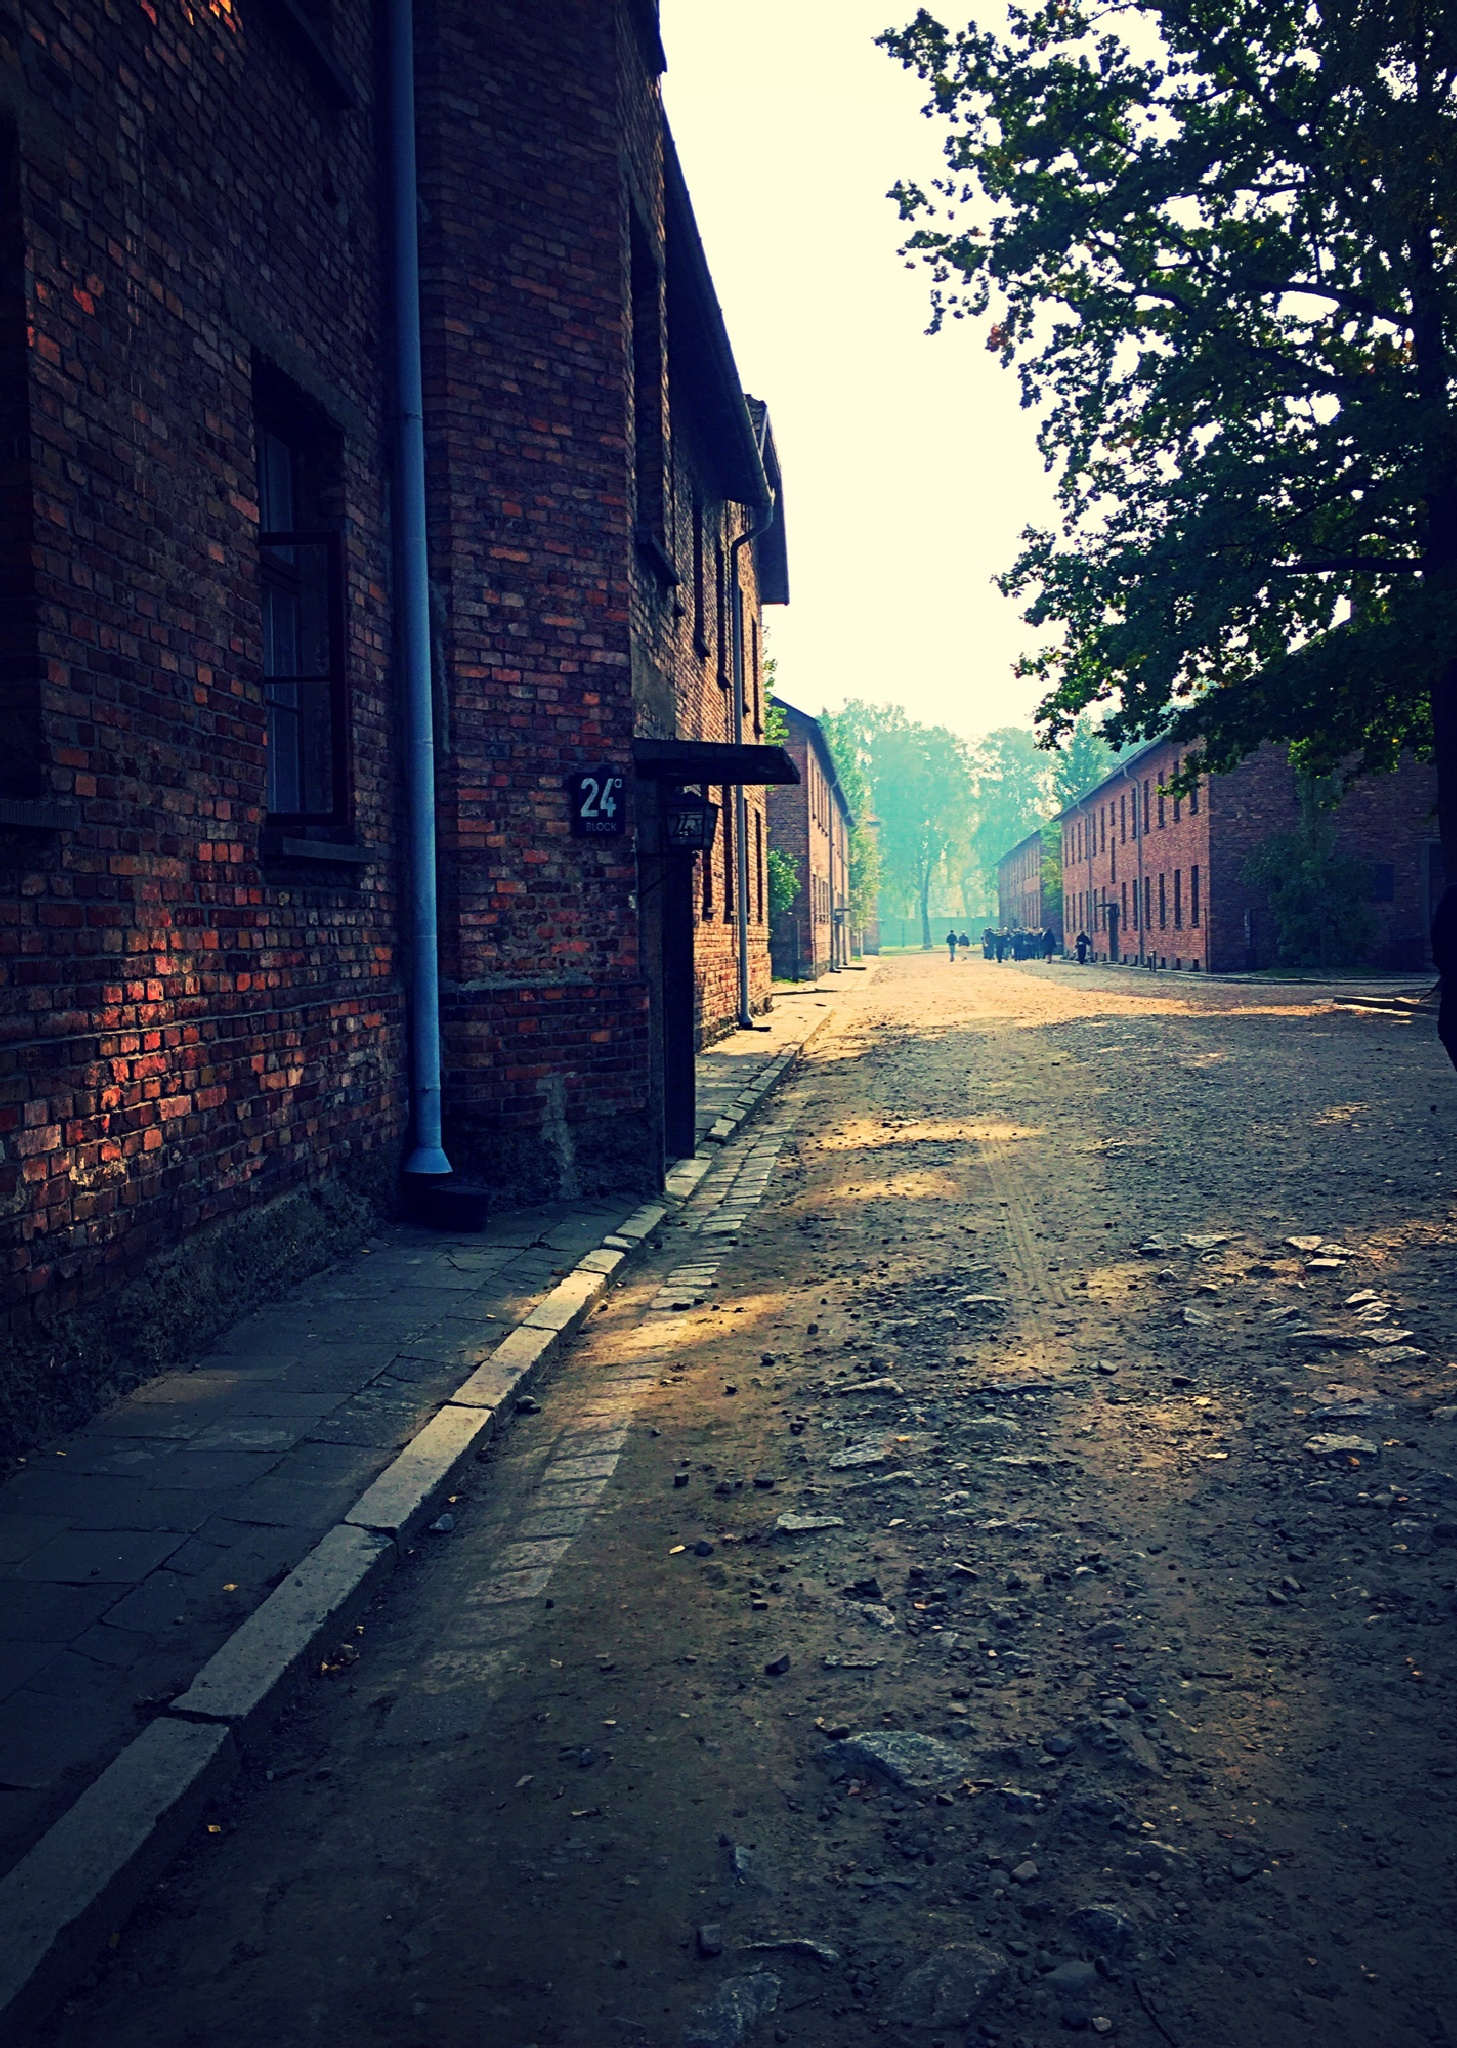 The Street To Death by gunnhelen.sture.